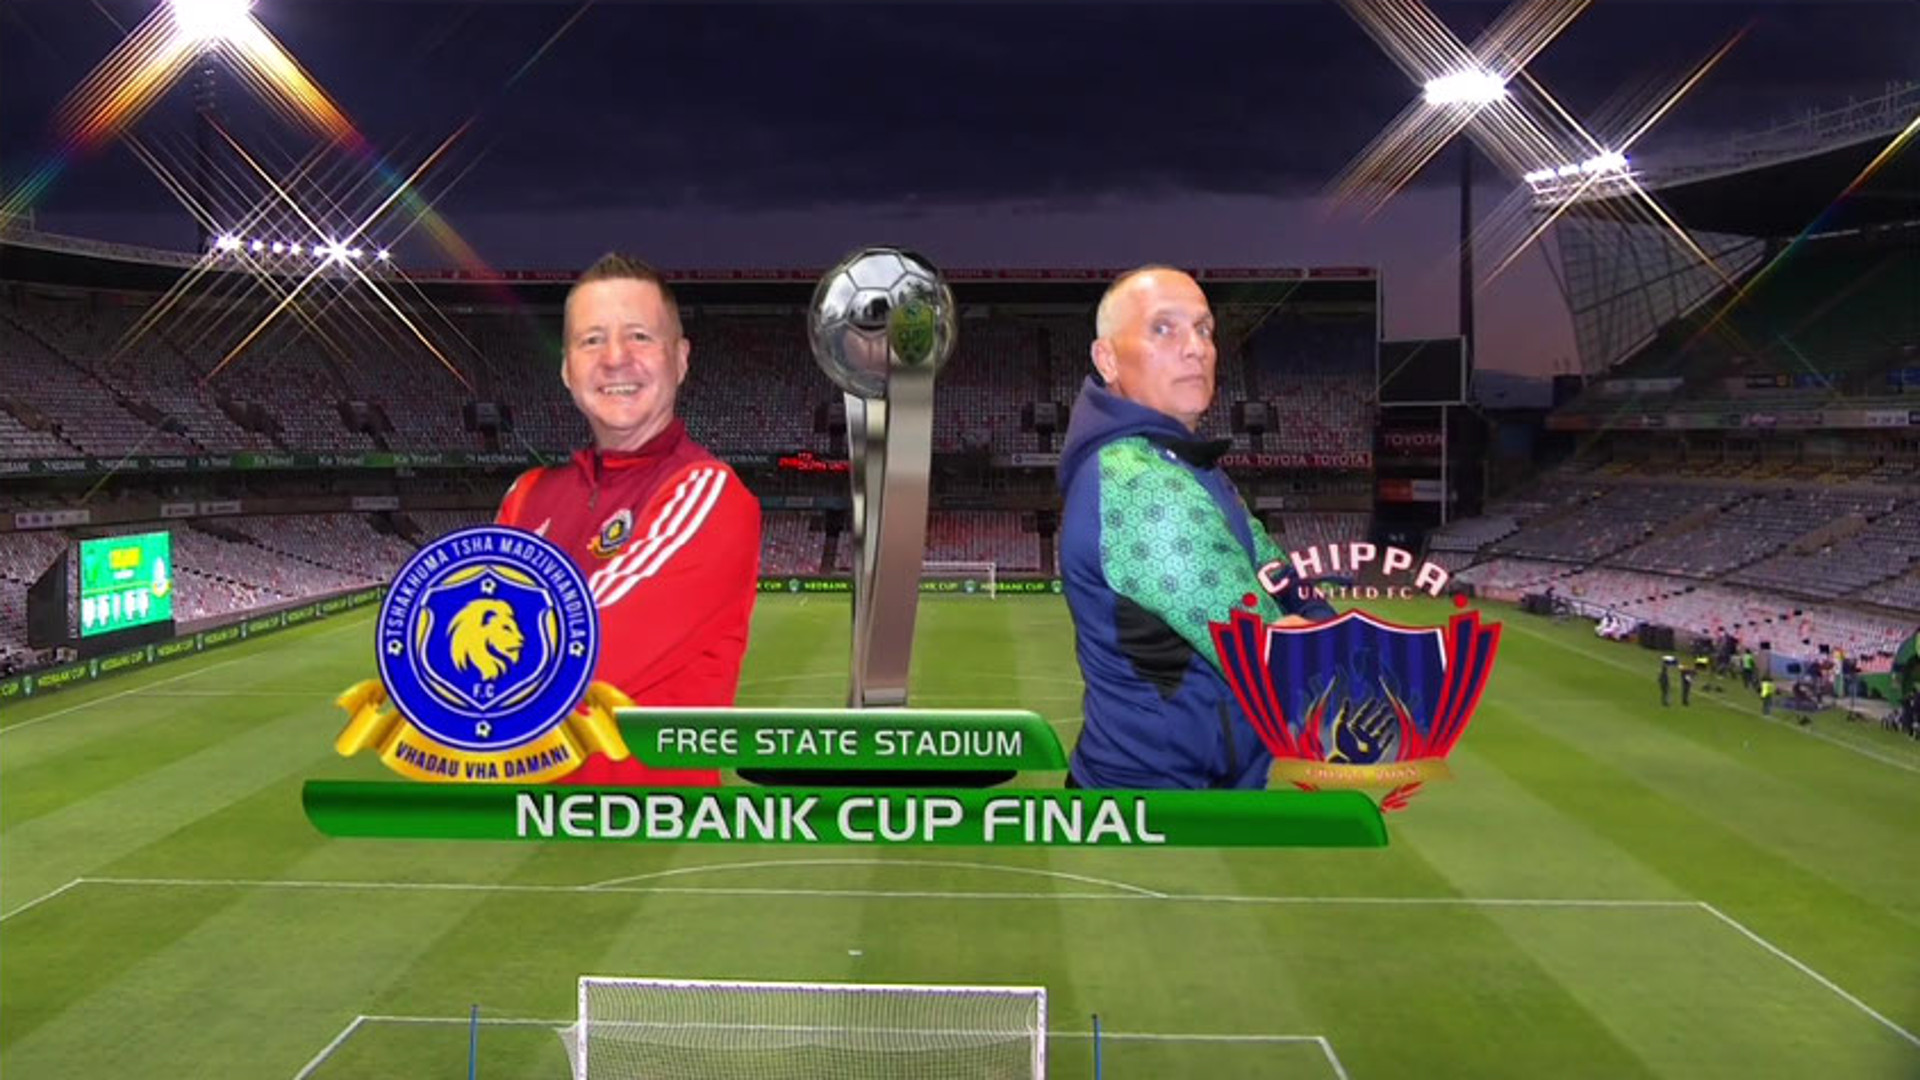 Nedbank Cup | Final | Tshakhuma Tsha Madzivhandila v Chippa United | Highlights